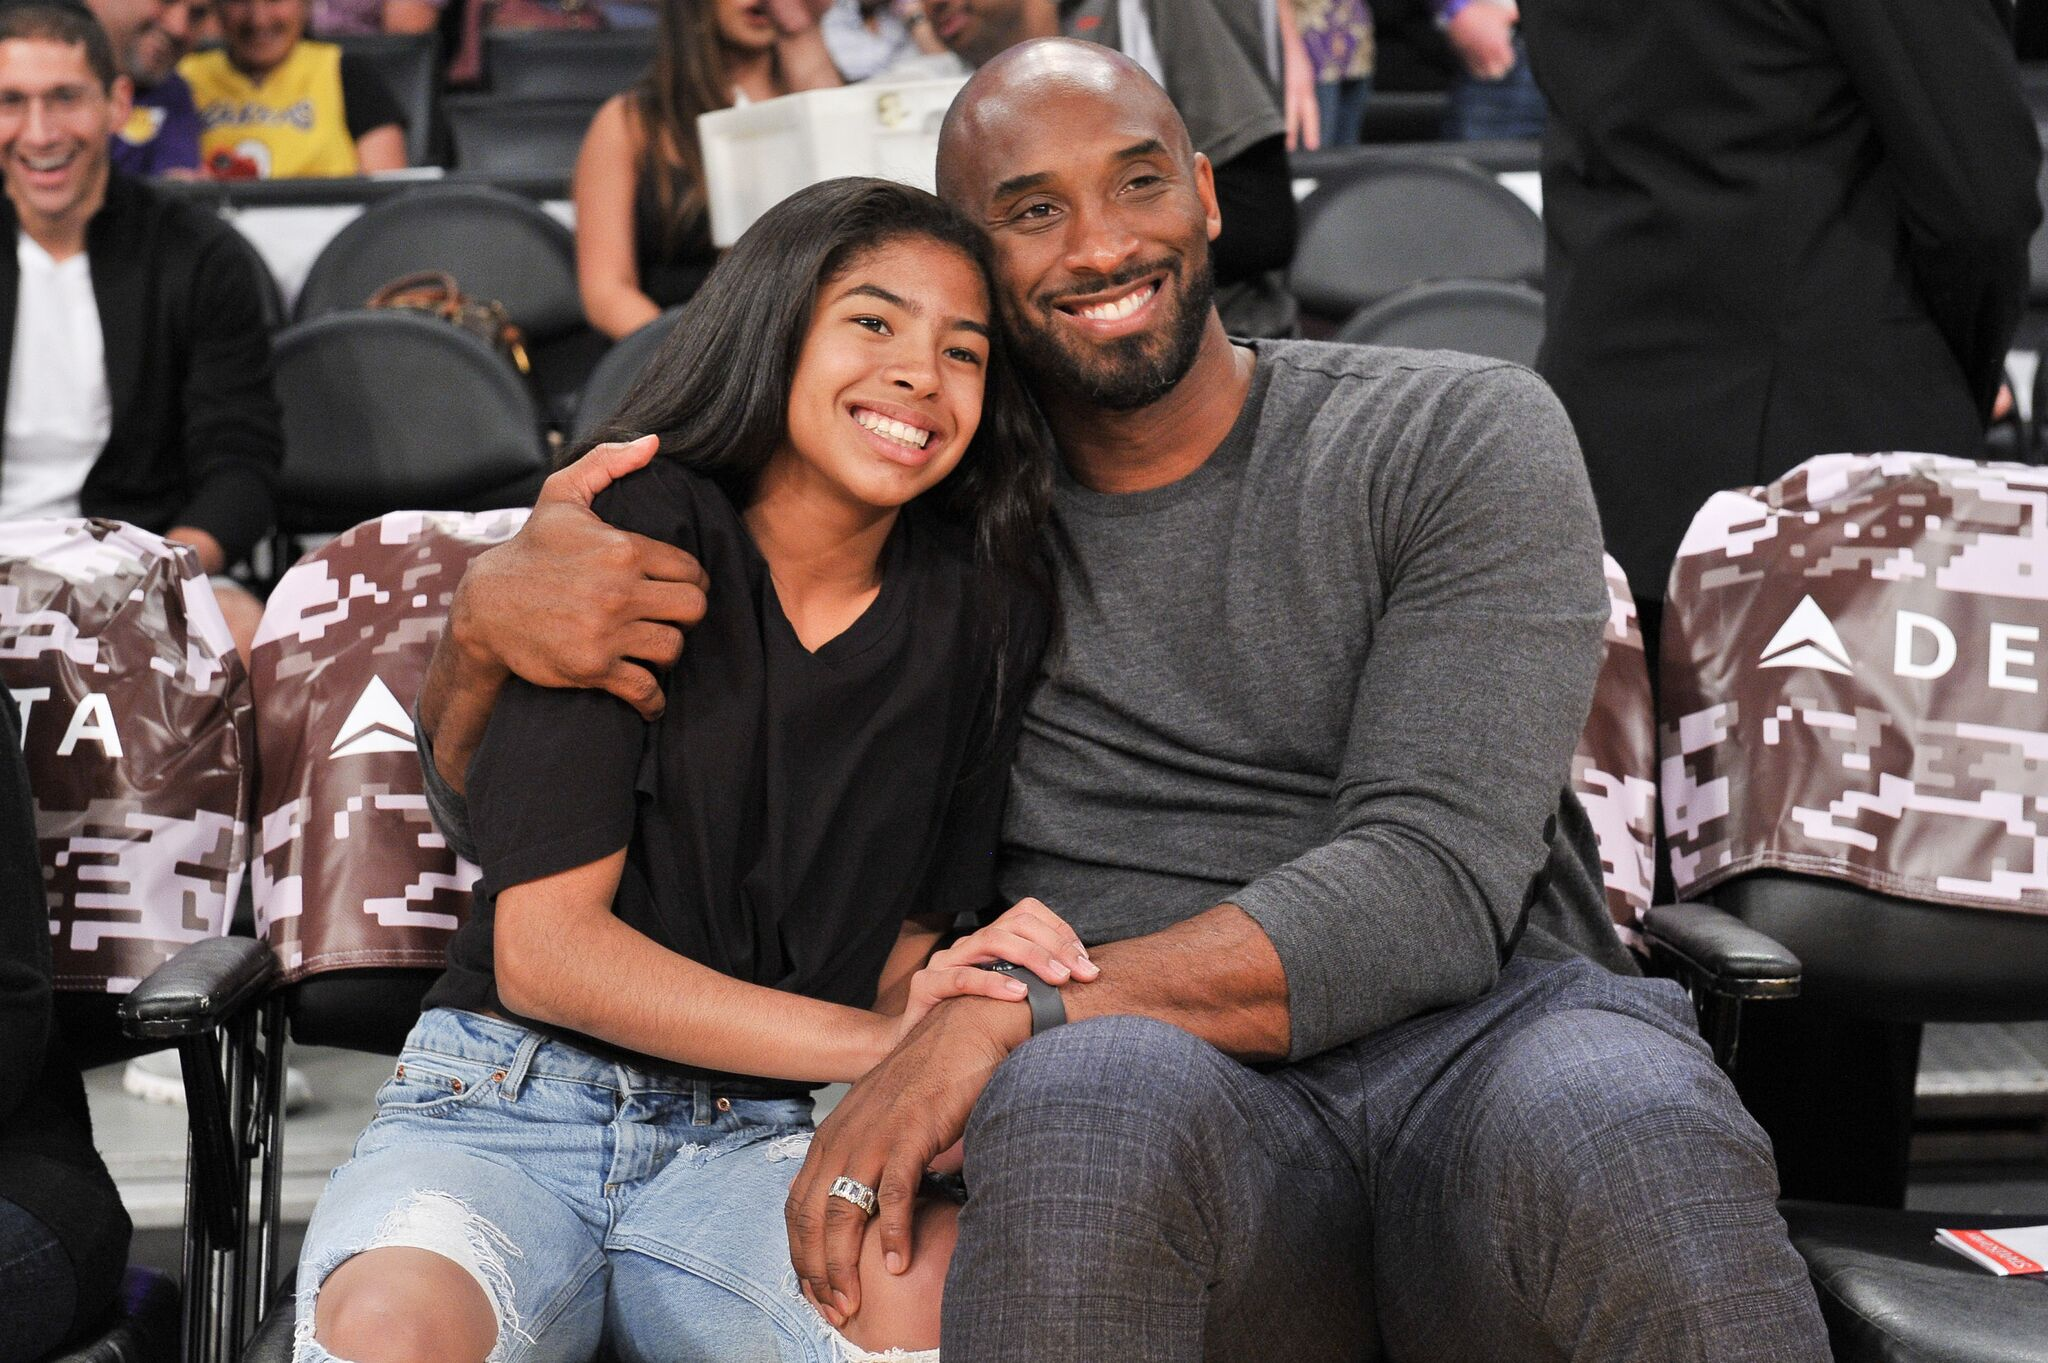 Kobe Bryant and his daughter Gianna Bryant attend a basketball game at Staples Center on November 17, 2019 in Los Angeles, California. | Source: Getty Images